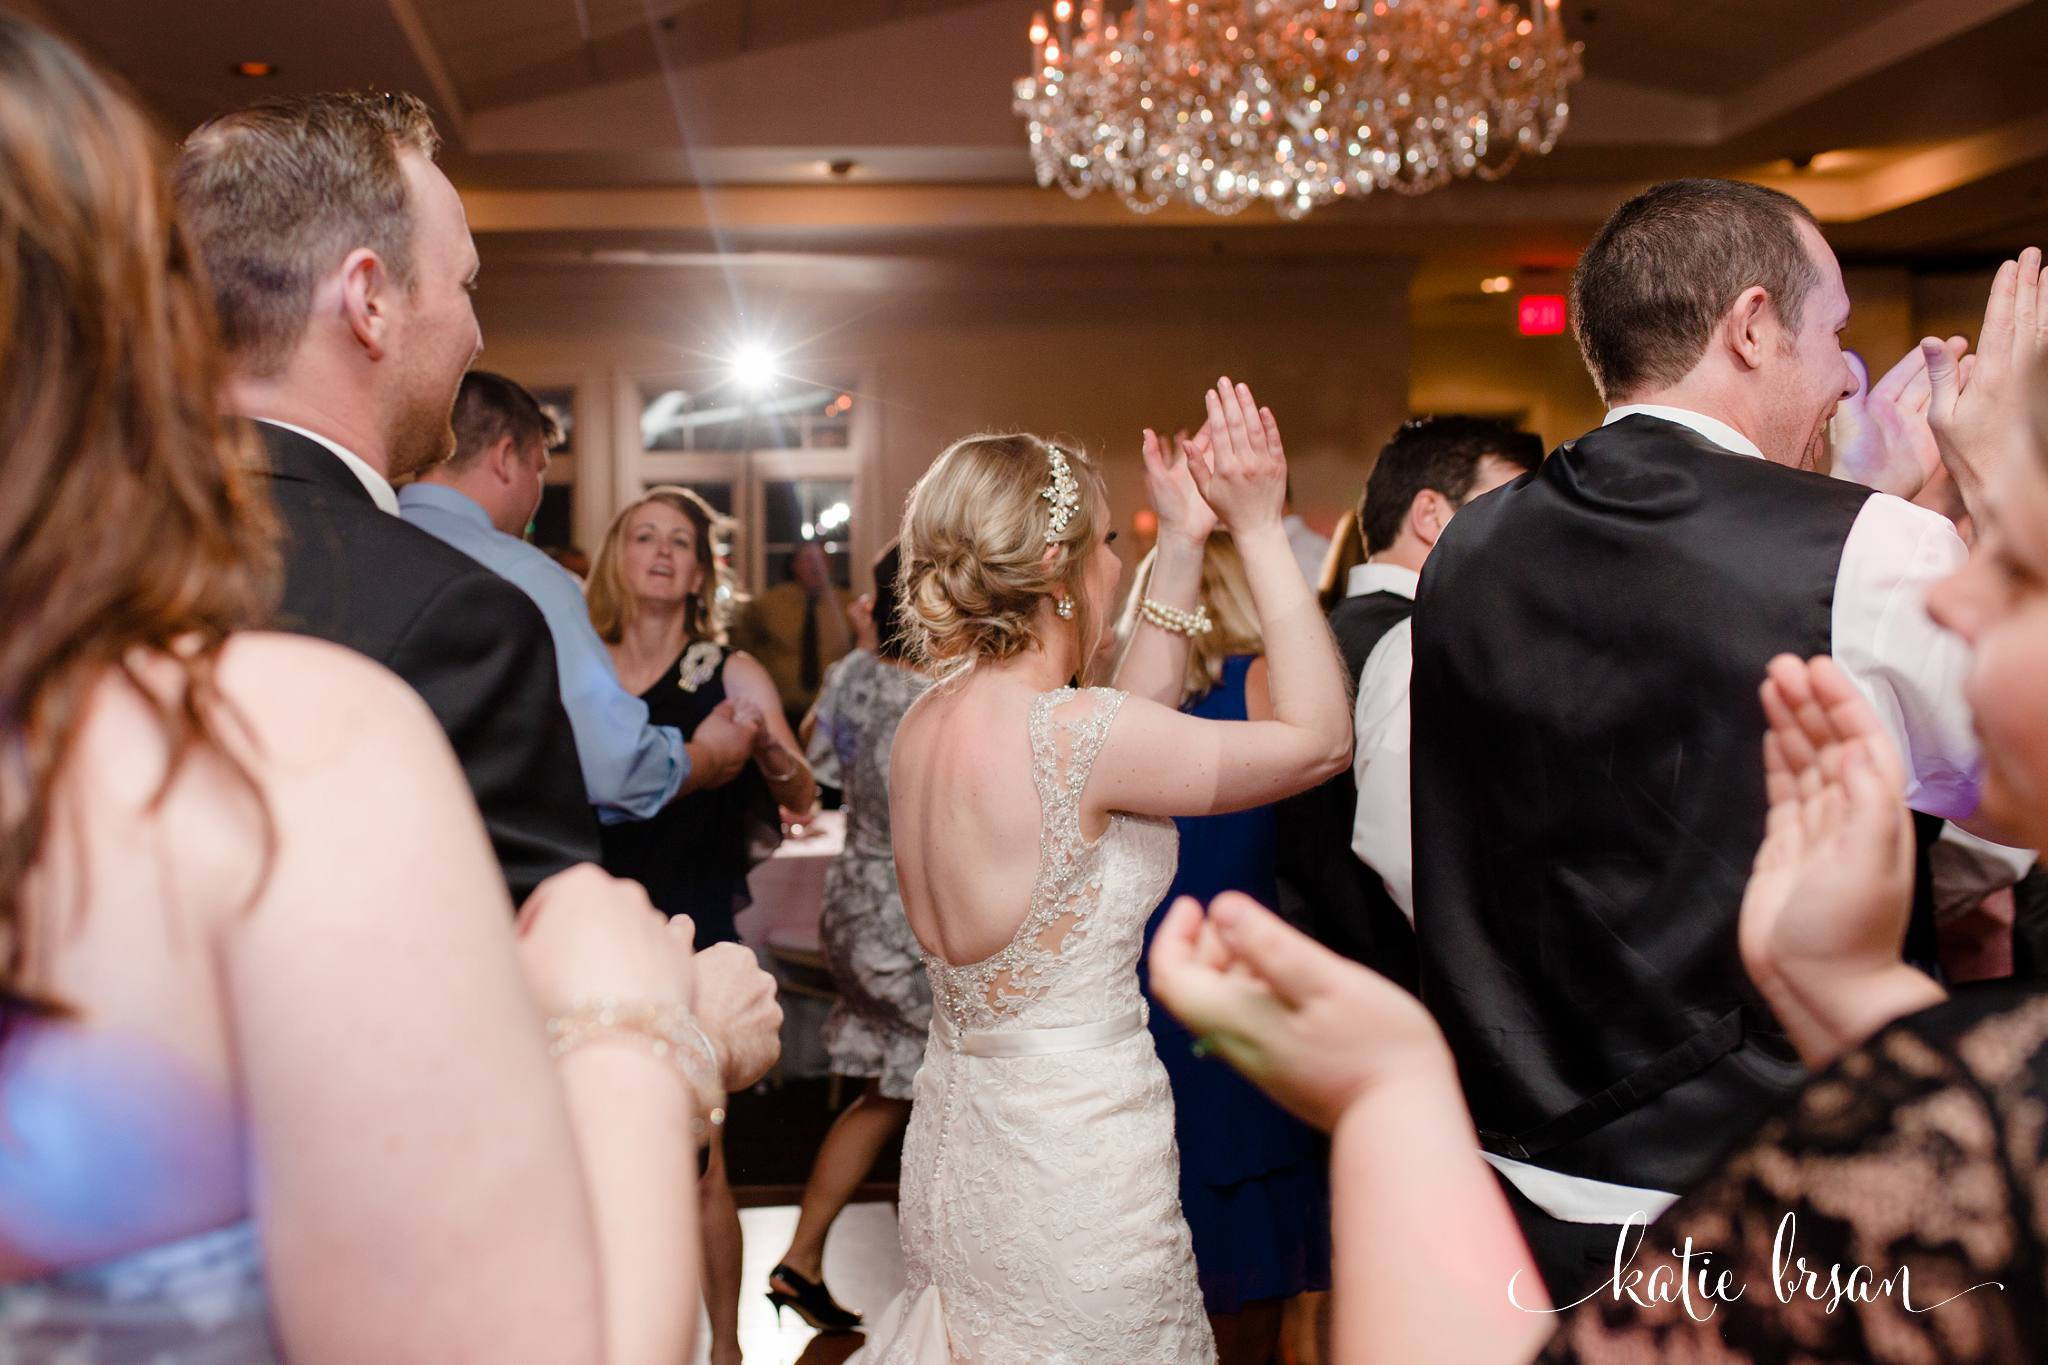 Mokena_Lemont_Wedding_Ruffled_Feathers_Wedding_1446.jpg